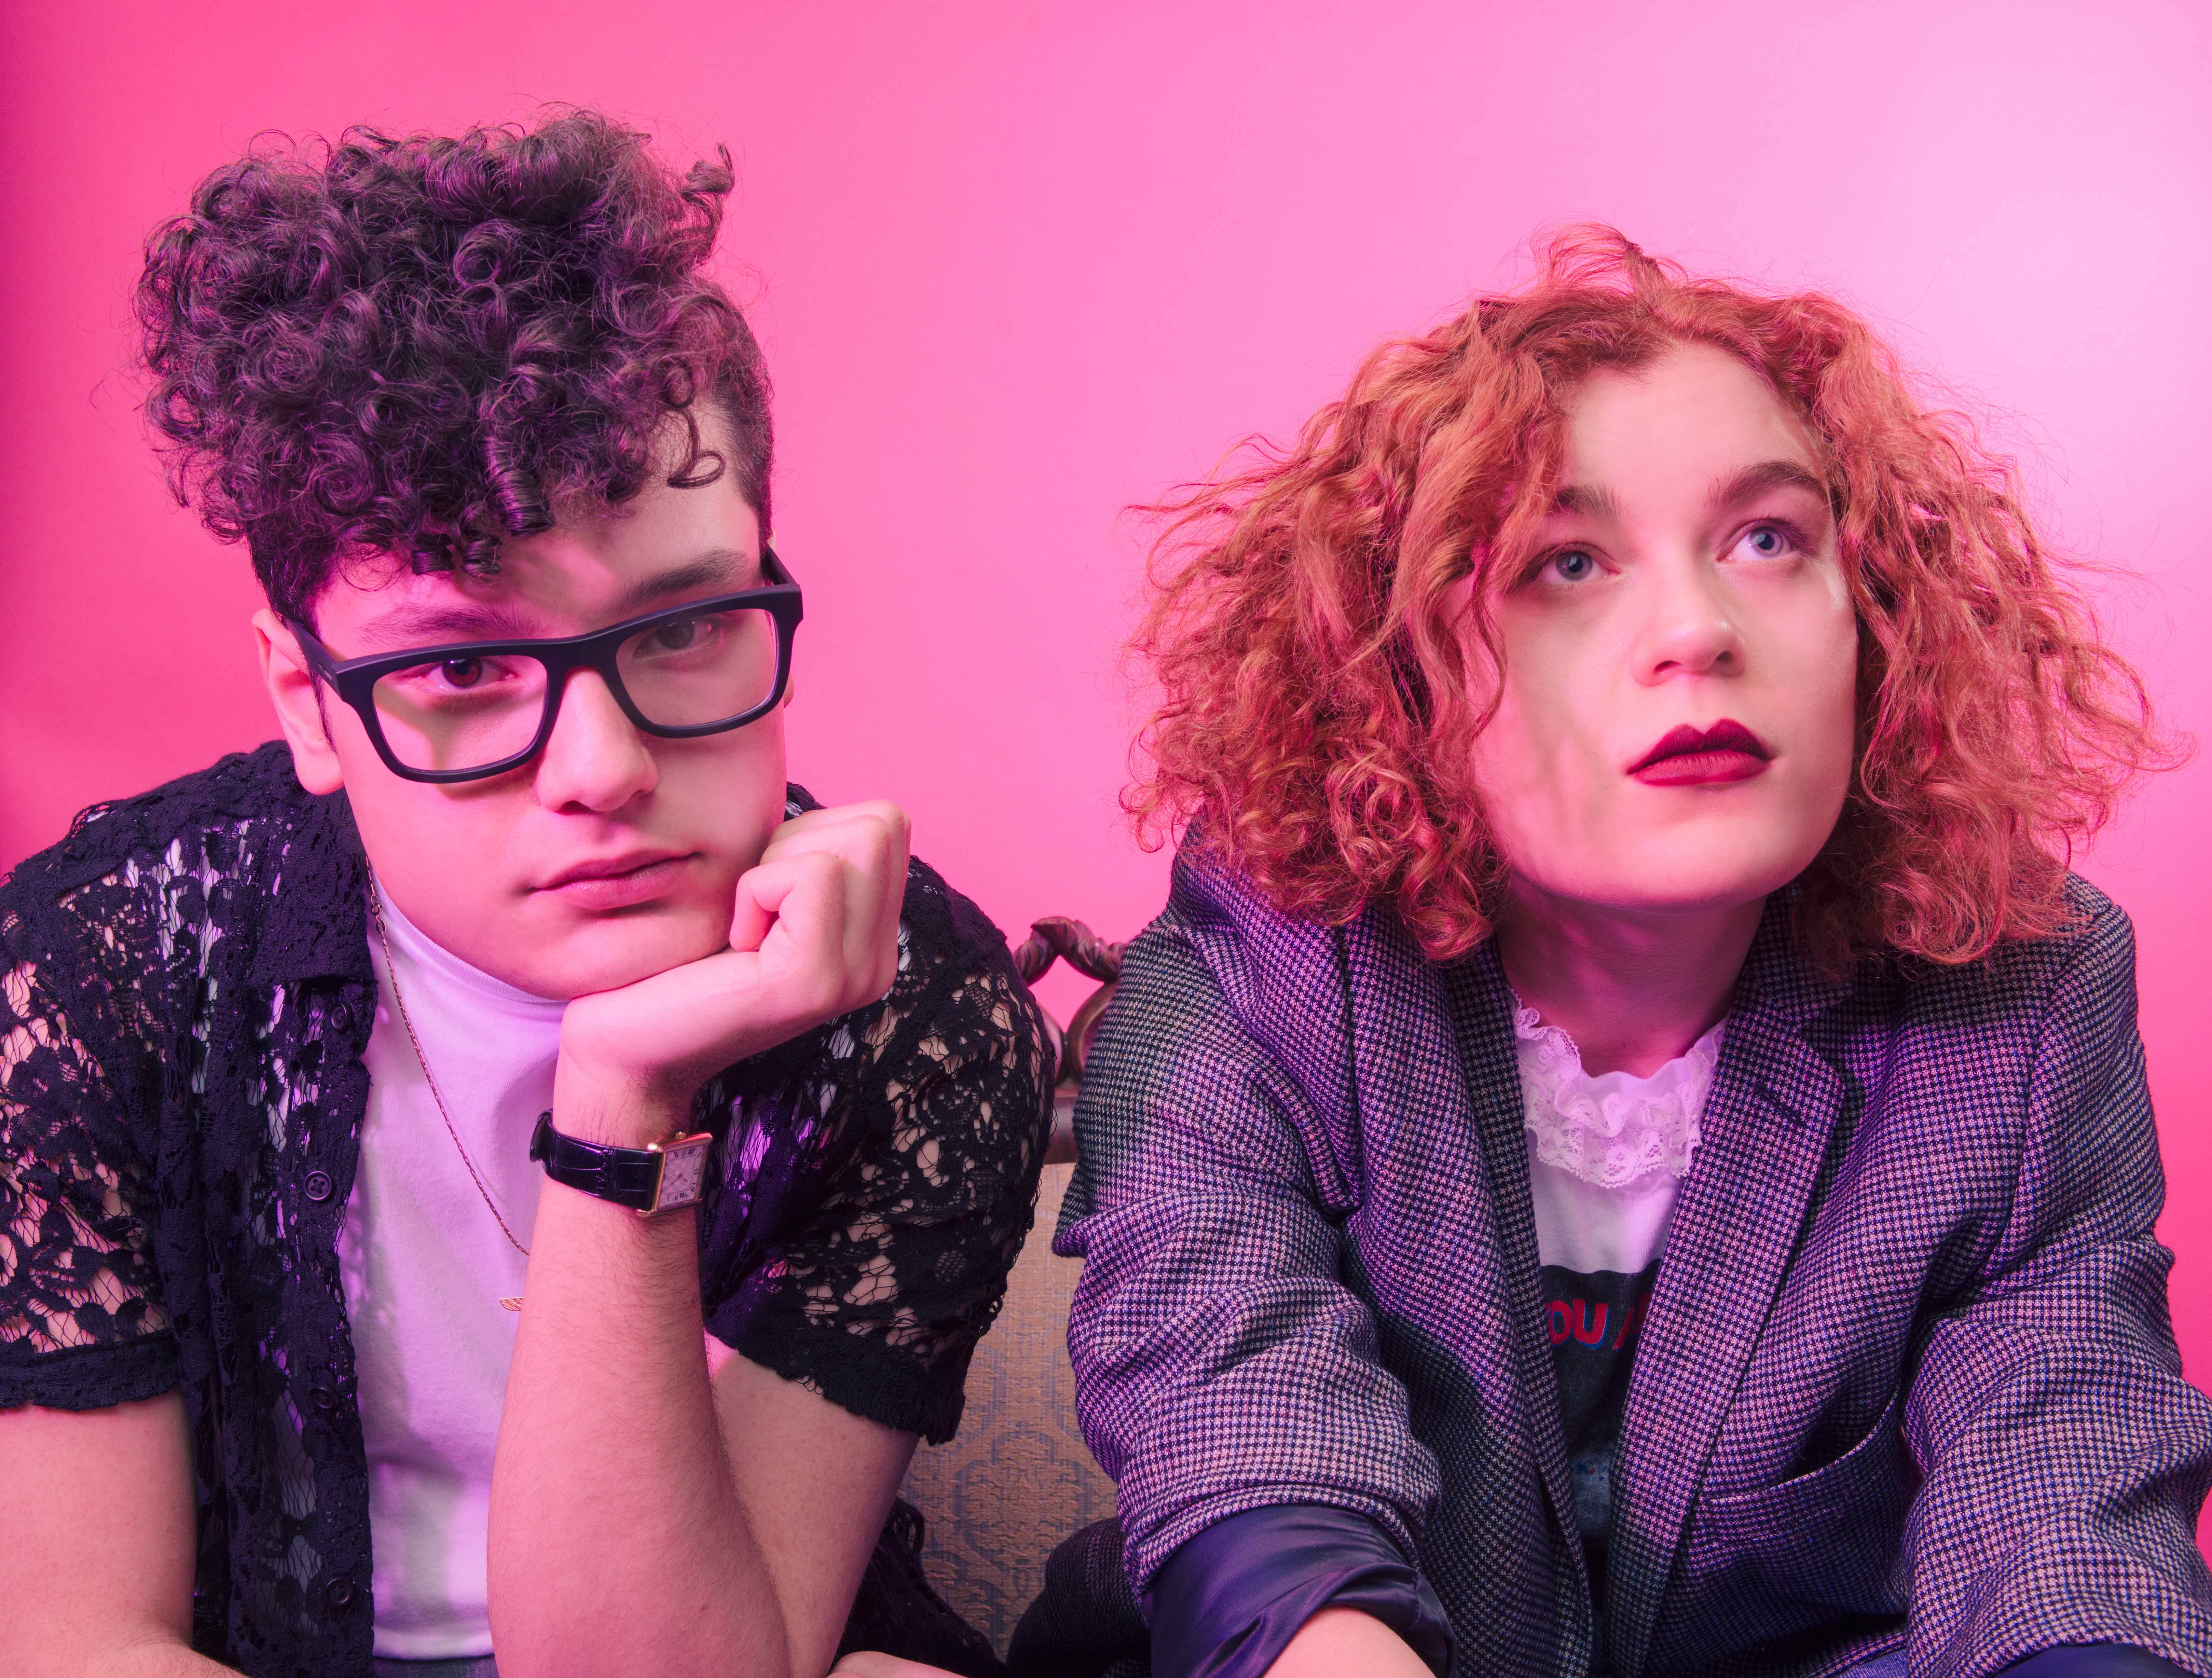 """PREMIERE: Synth-pop duo Posh Hammer share """"Leave Me Here Tonight"""" video"""